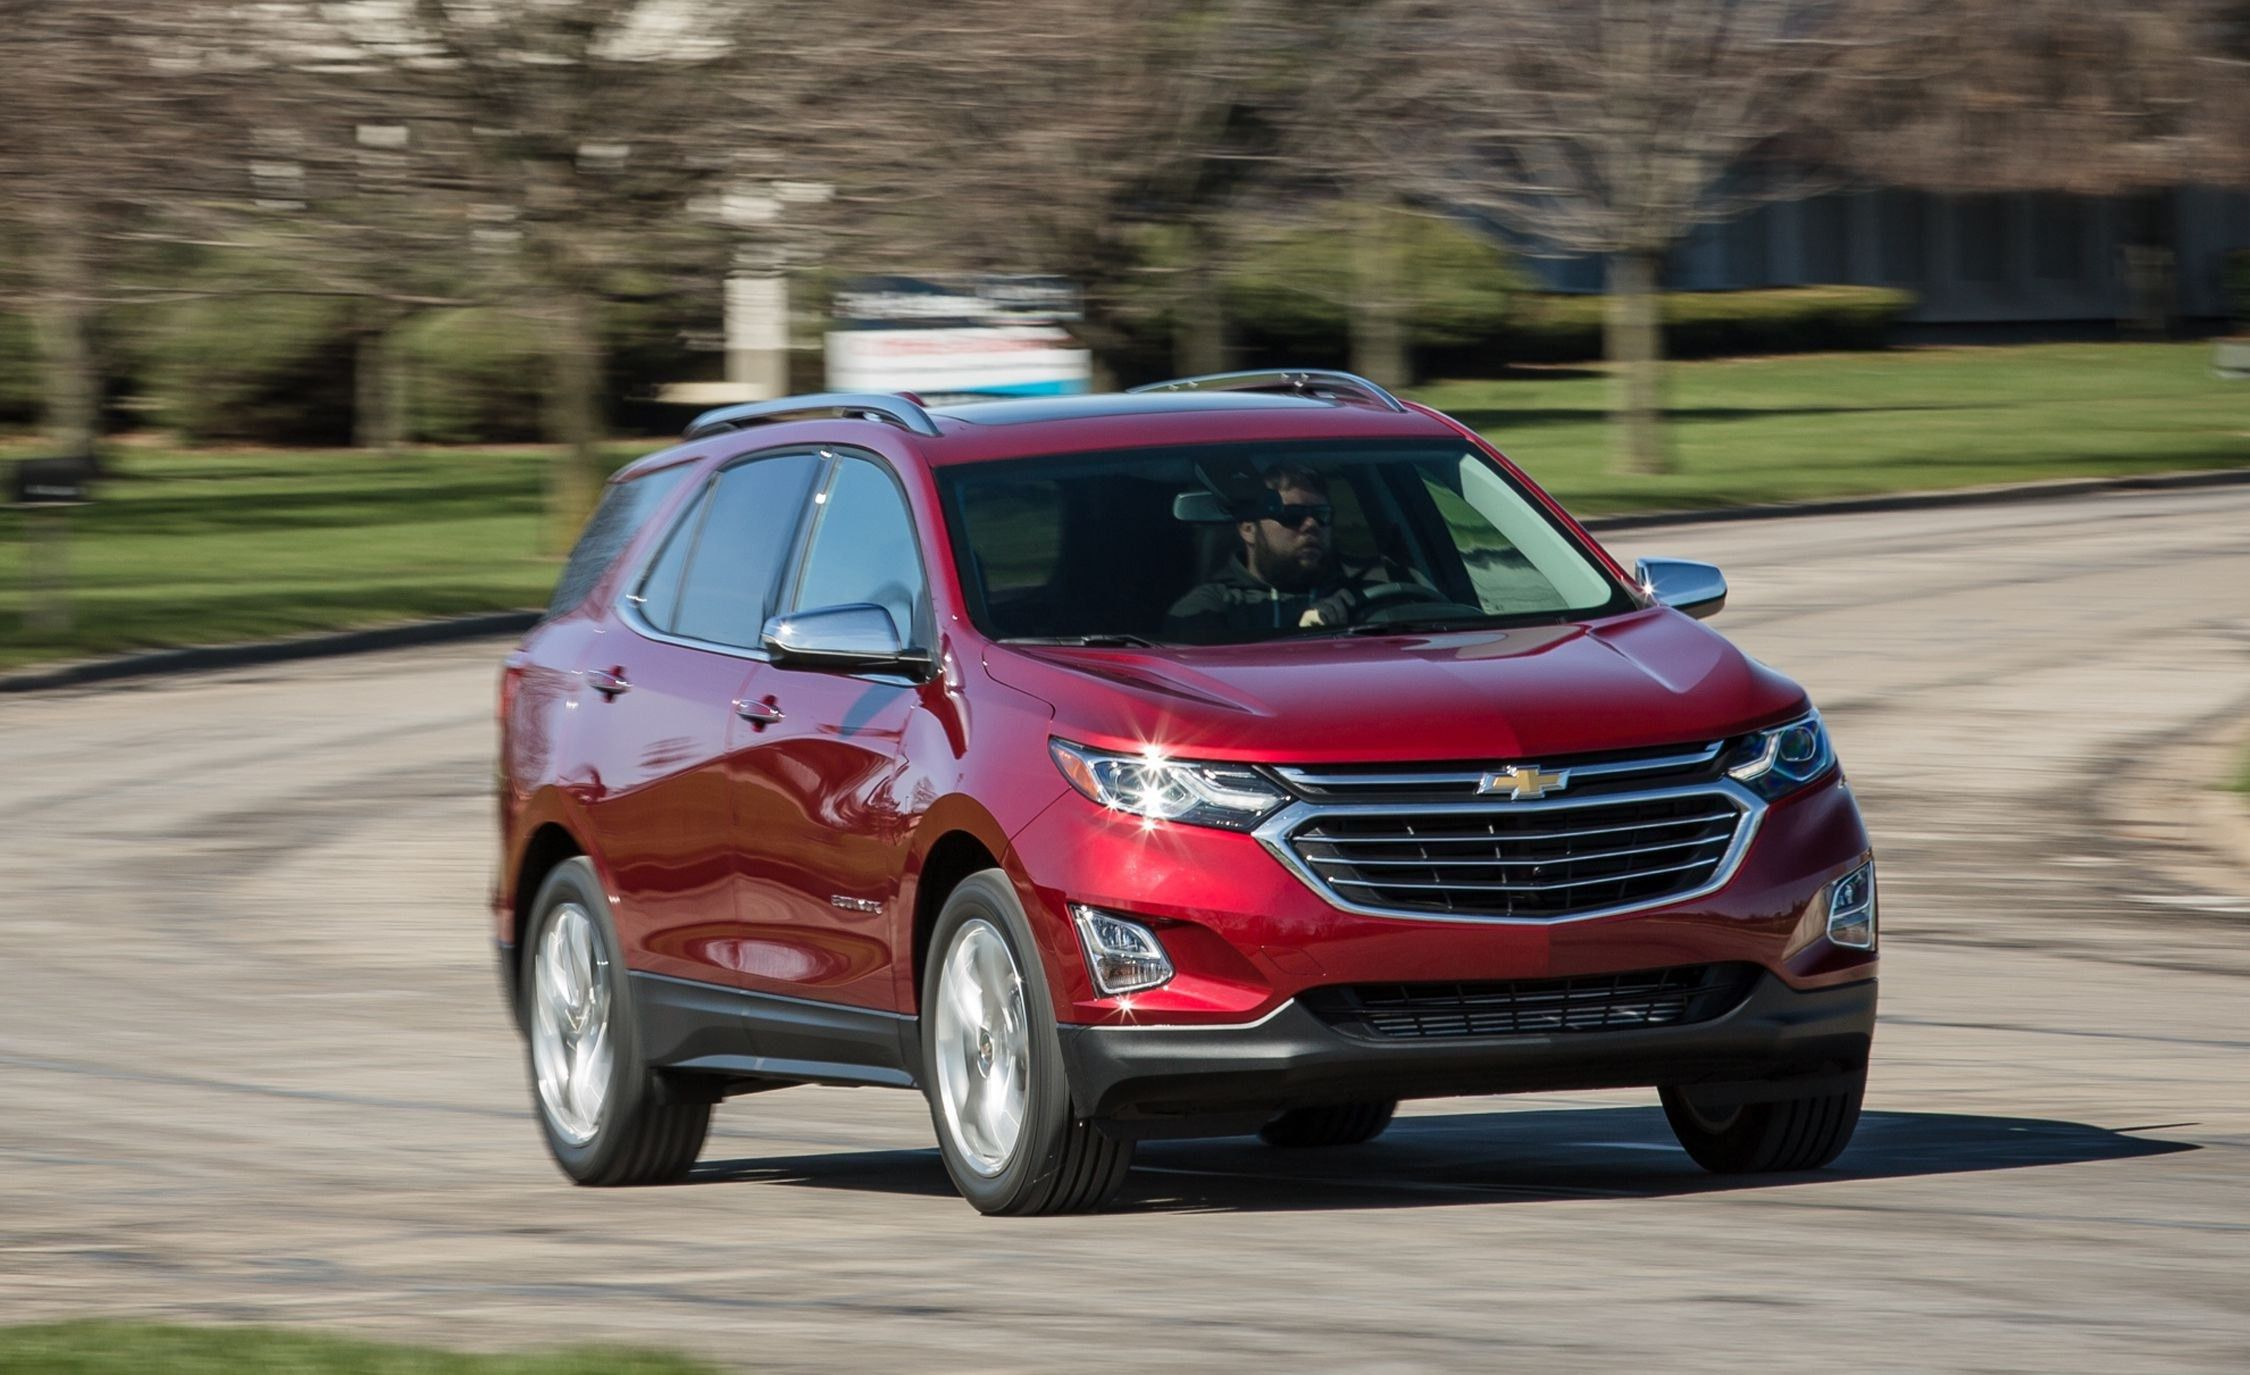 2019 2020 Chevrolet Overview And Price Chevrolet Equinox Chevrolet Volvo